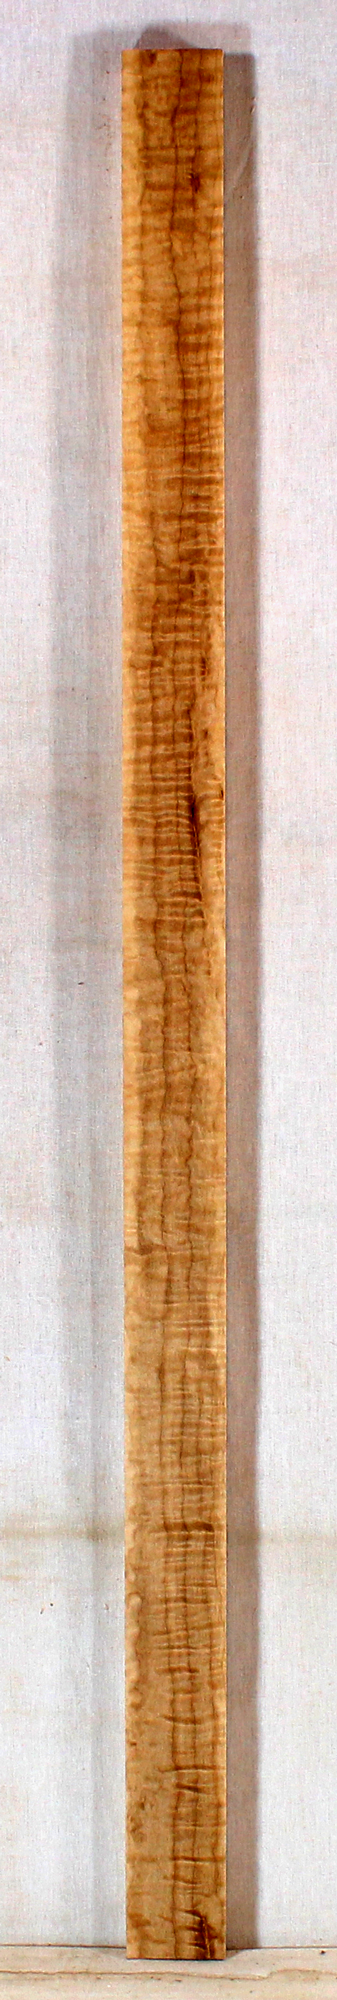 Maple Dulcimer Finger Board (BK94)